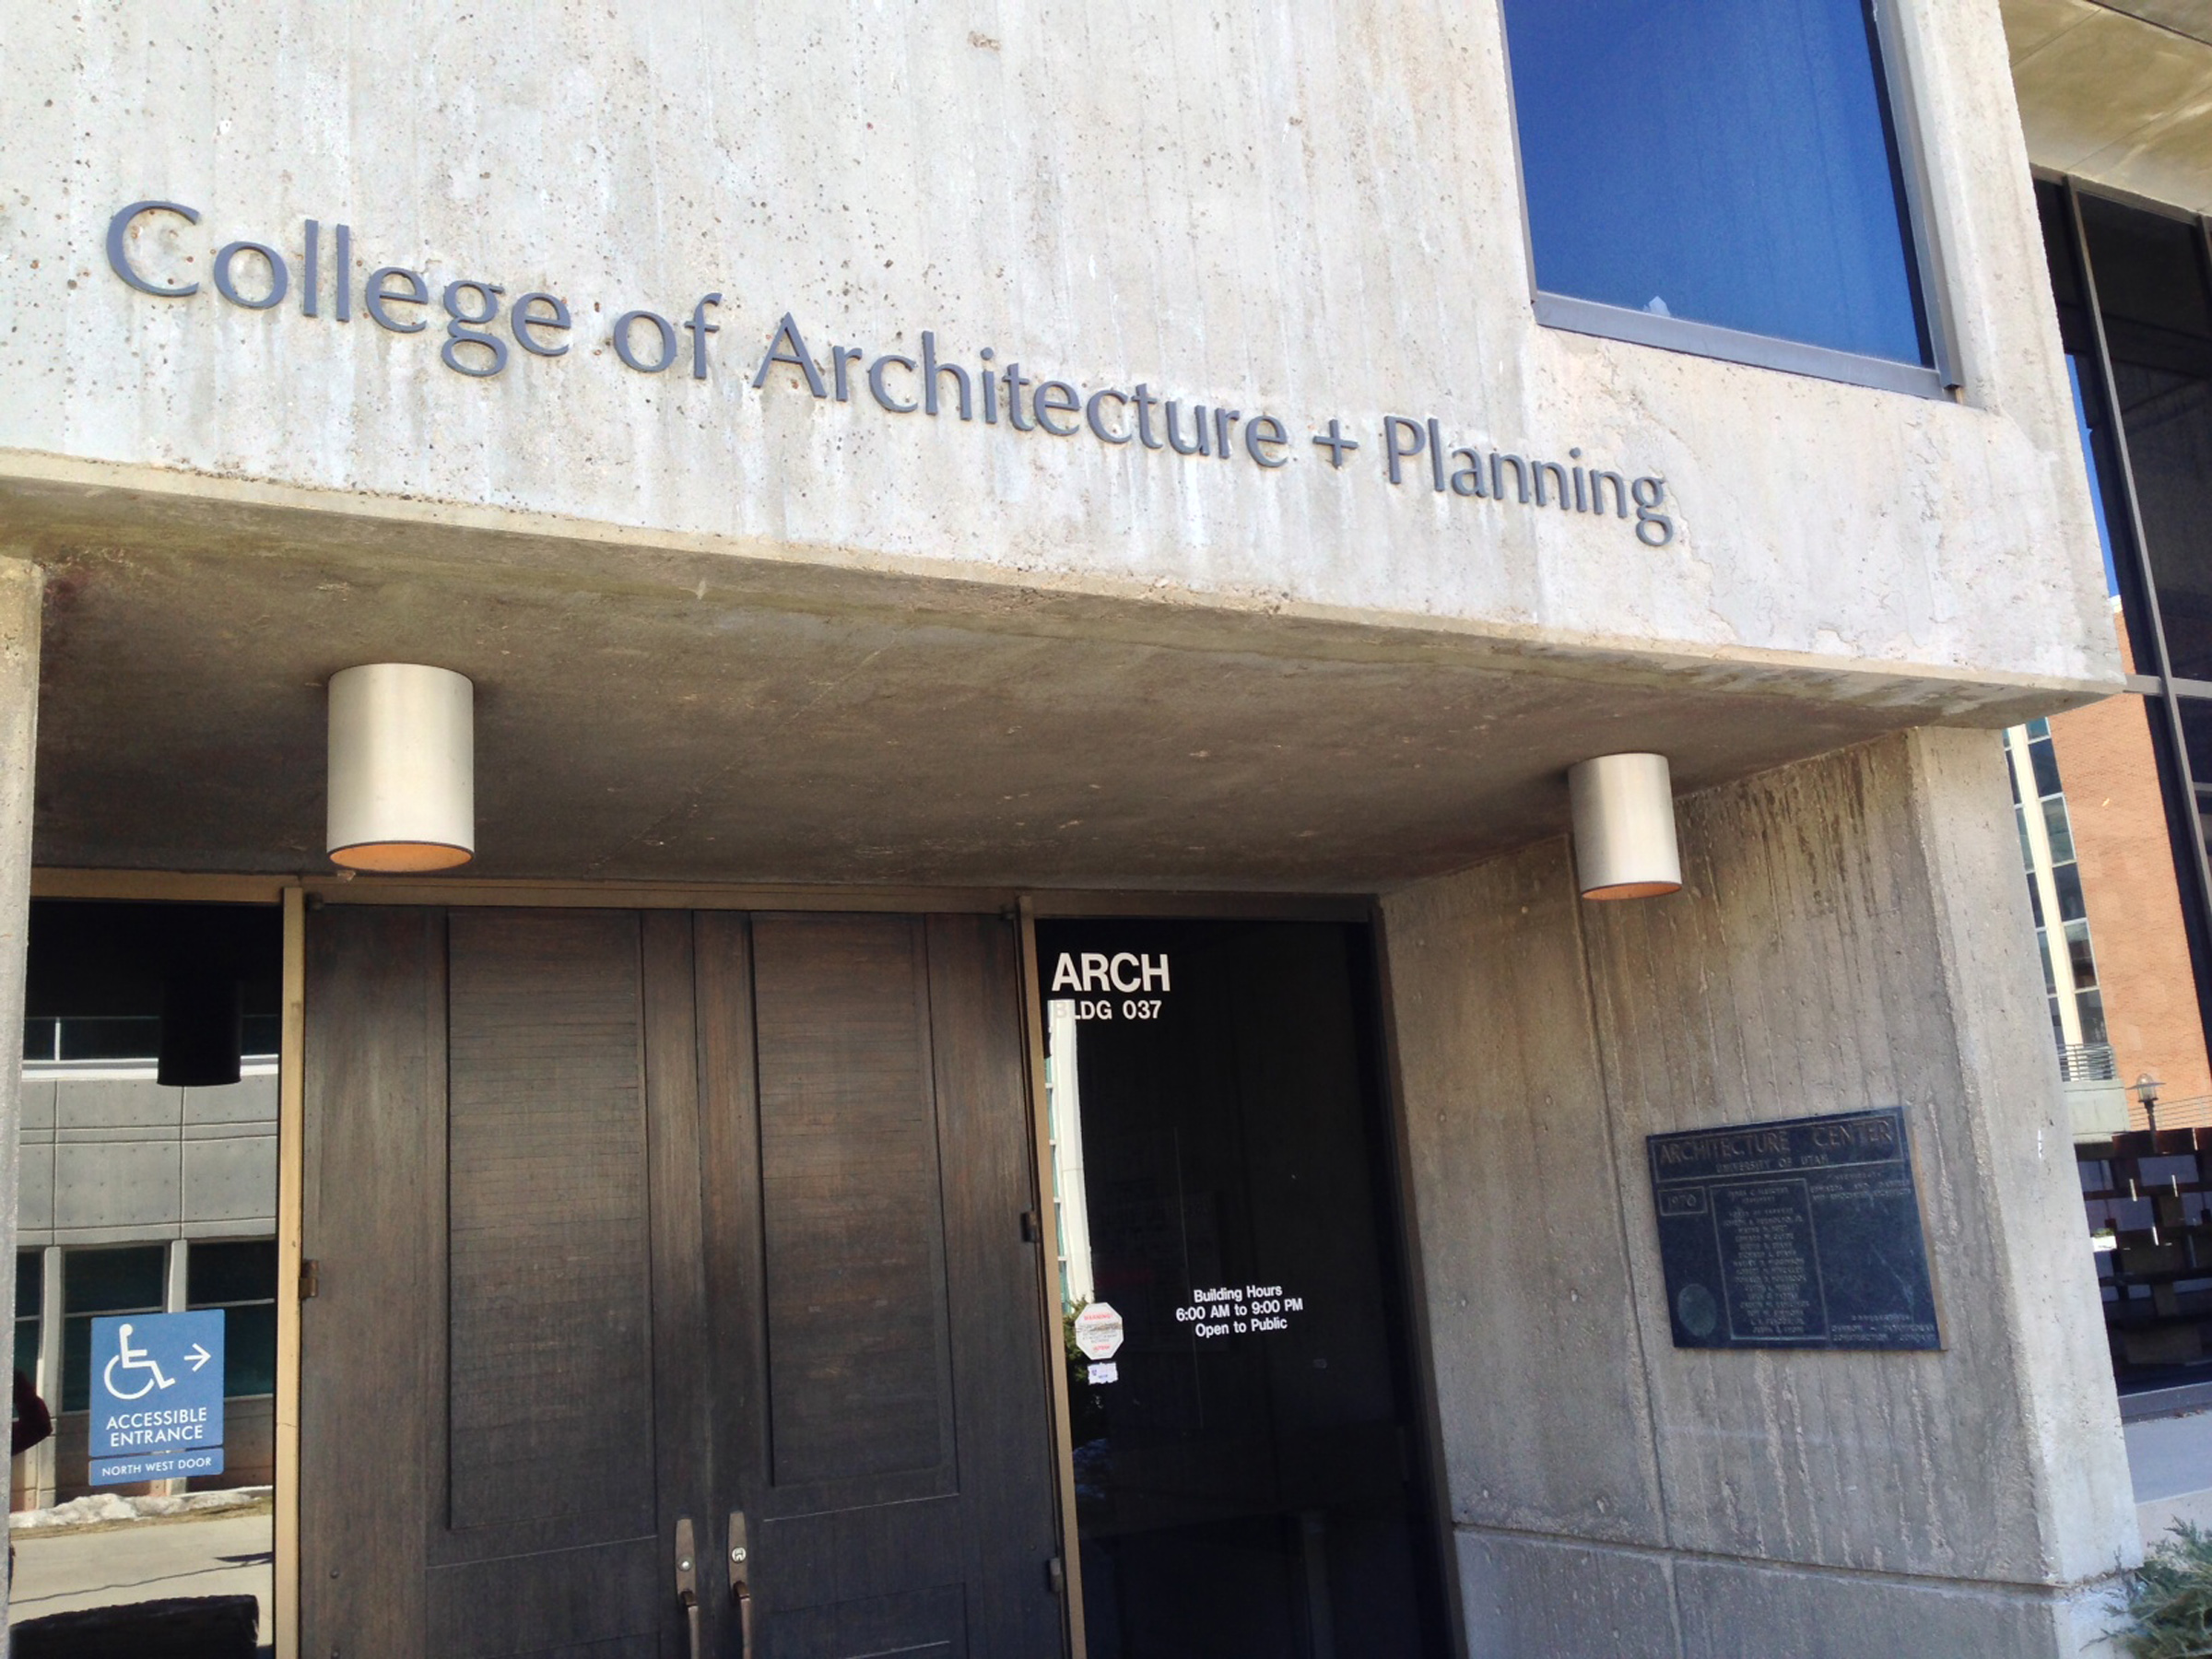 College of Architecture + Planning.